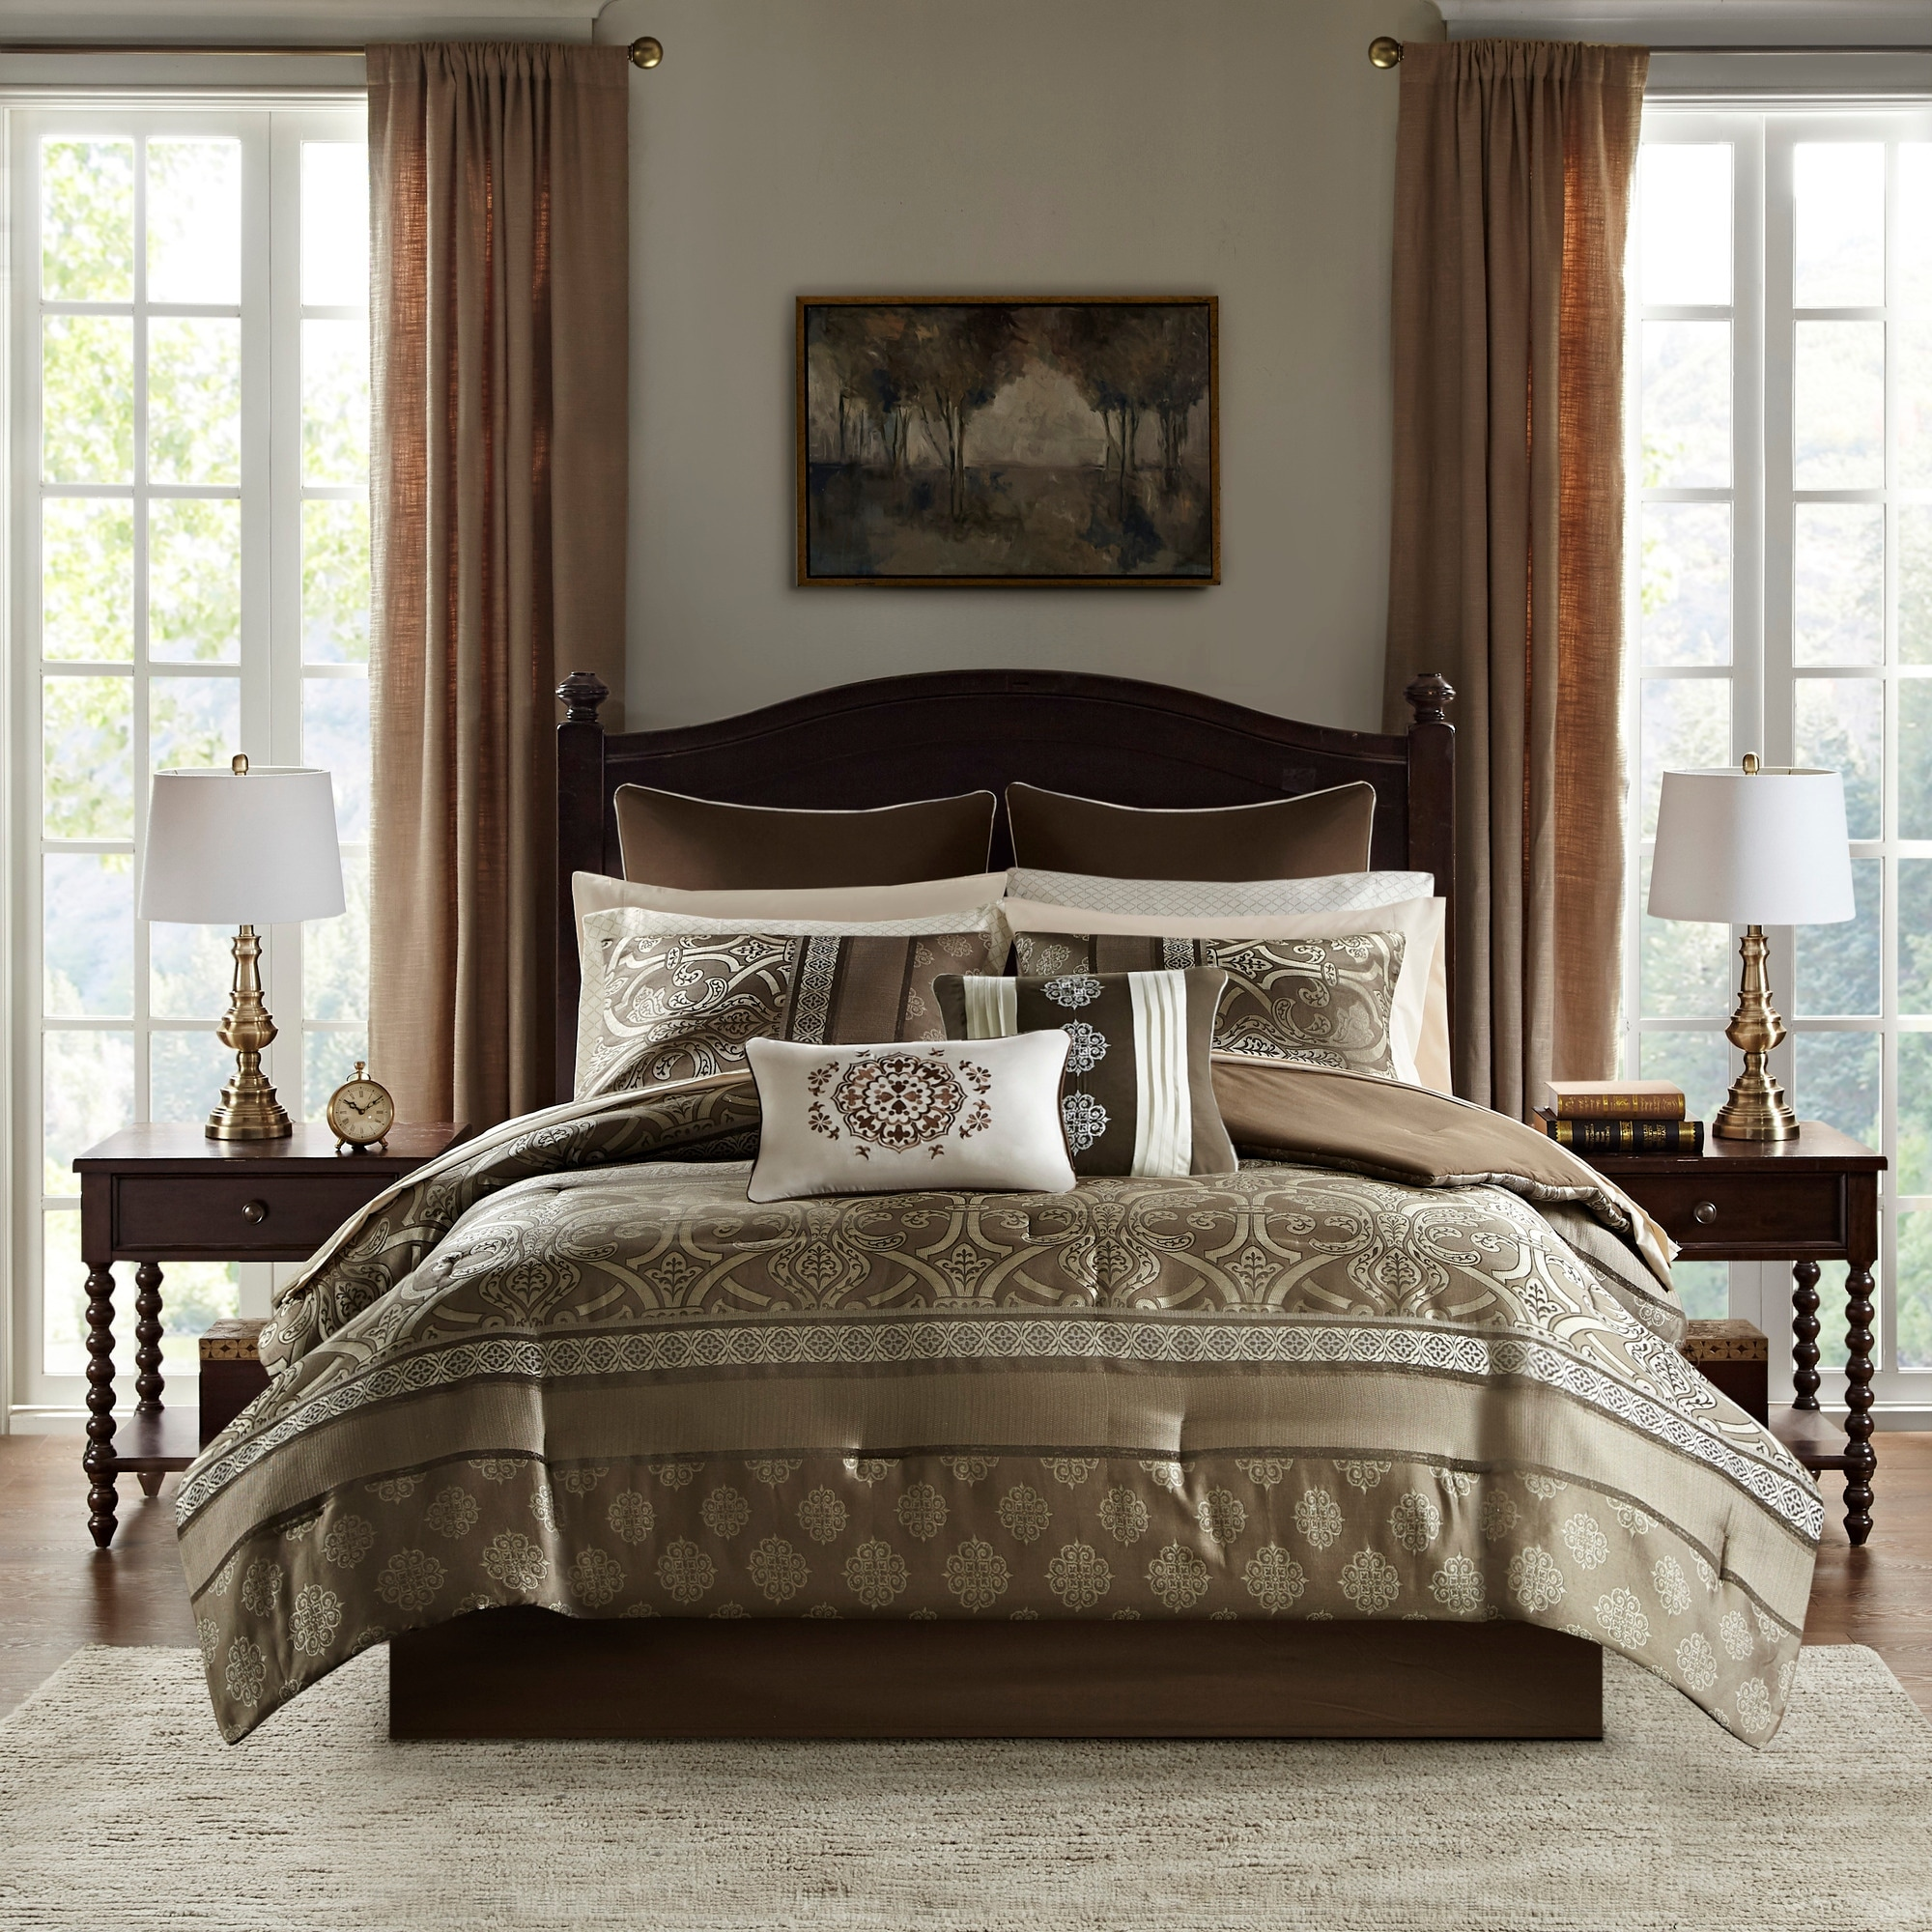 Madison Park Essentials Alexine Brown 16 Piece Jacquard Complete Bedding Set With 2 Sheet Sets On Sale Overstock 27406018